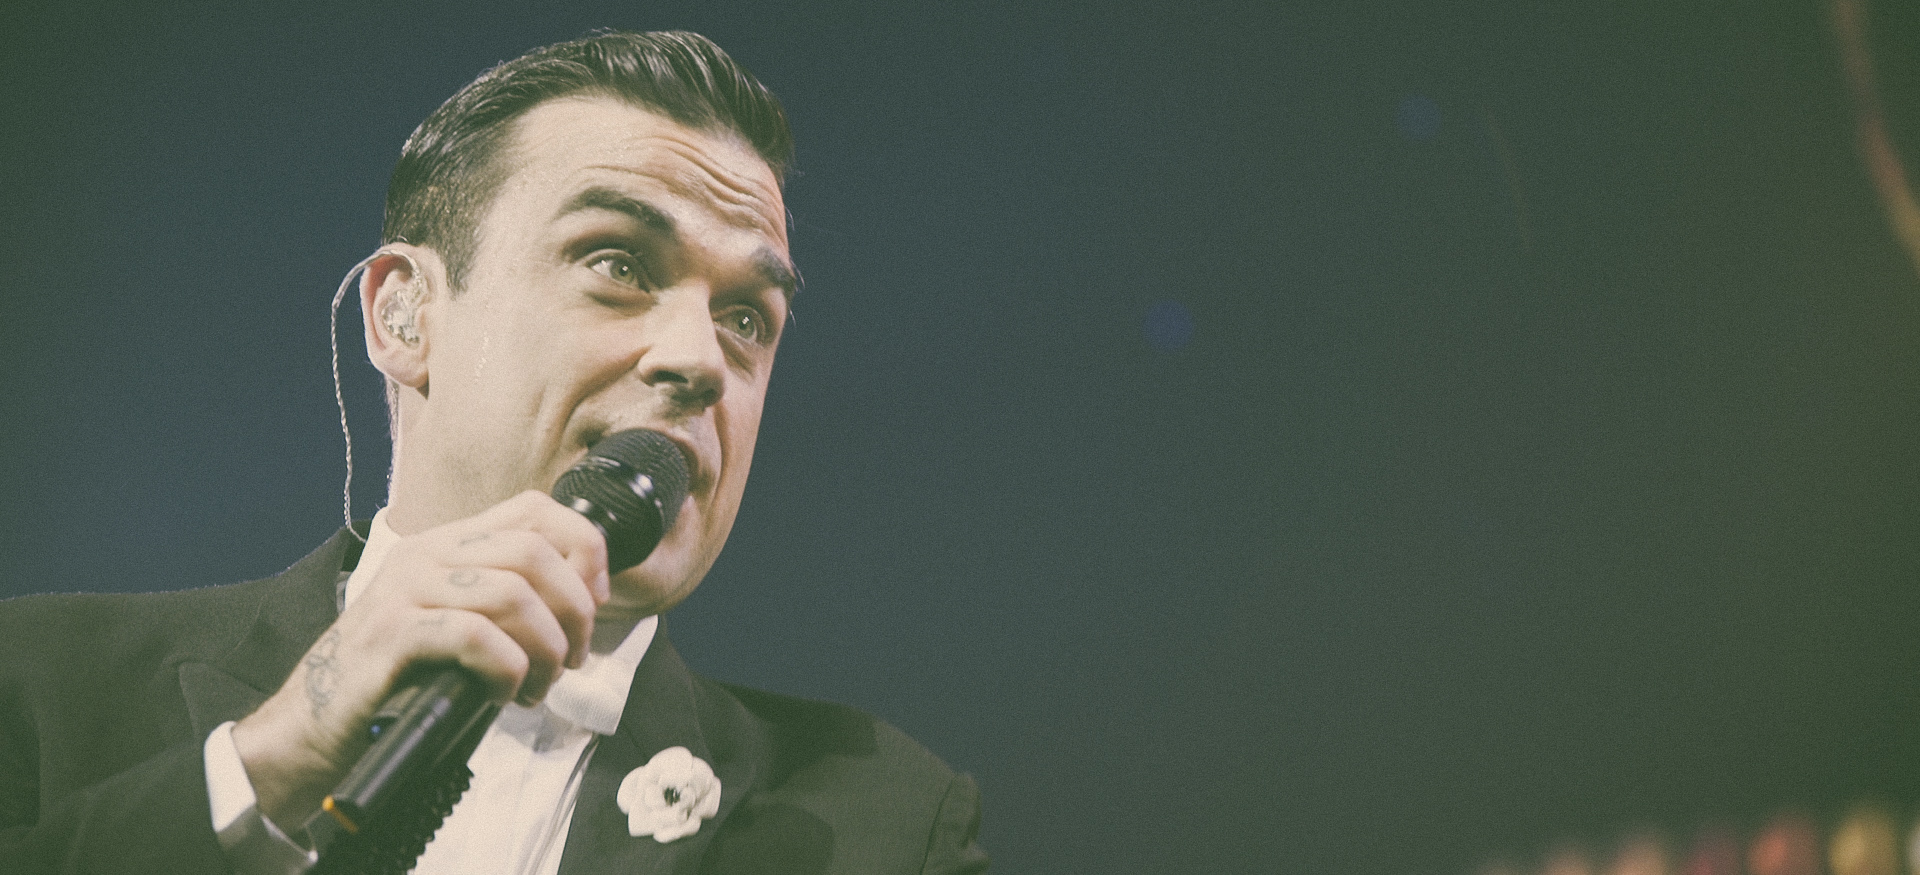 Robbie on Stage on the first night of the Australian Tour in Perth. Photo: Mick Jones